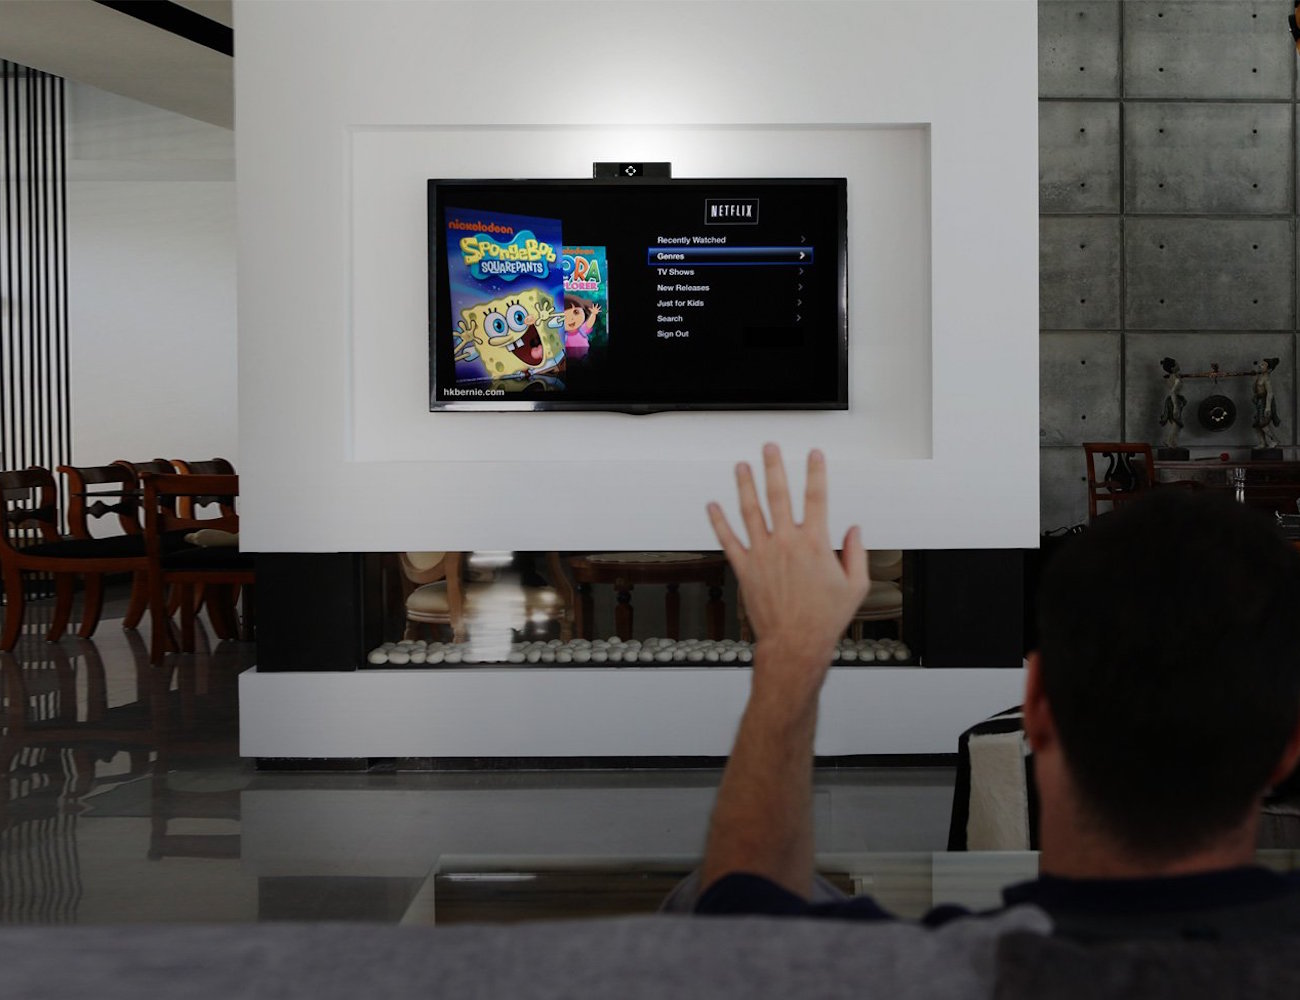 singlecue Gesture Control for Your Home Entertainment Devices